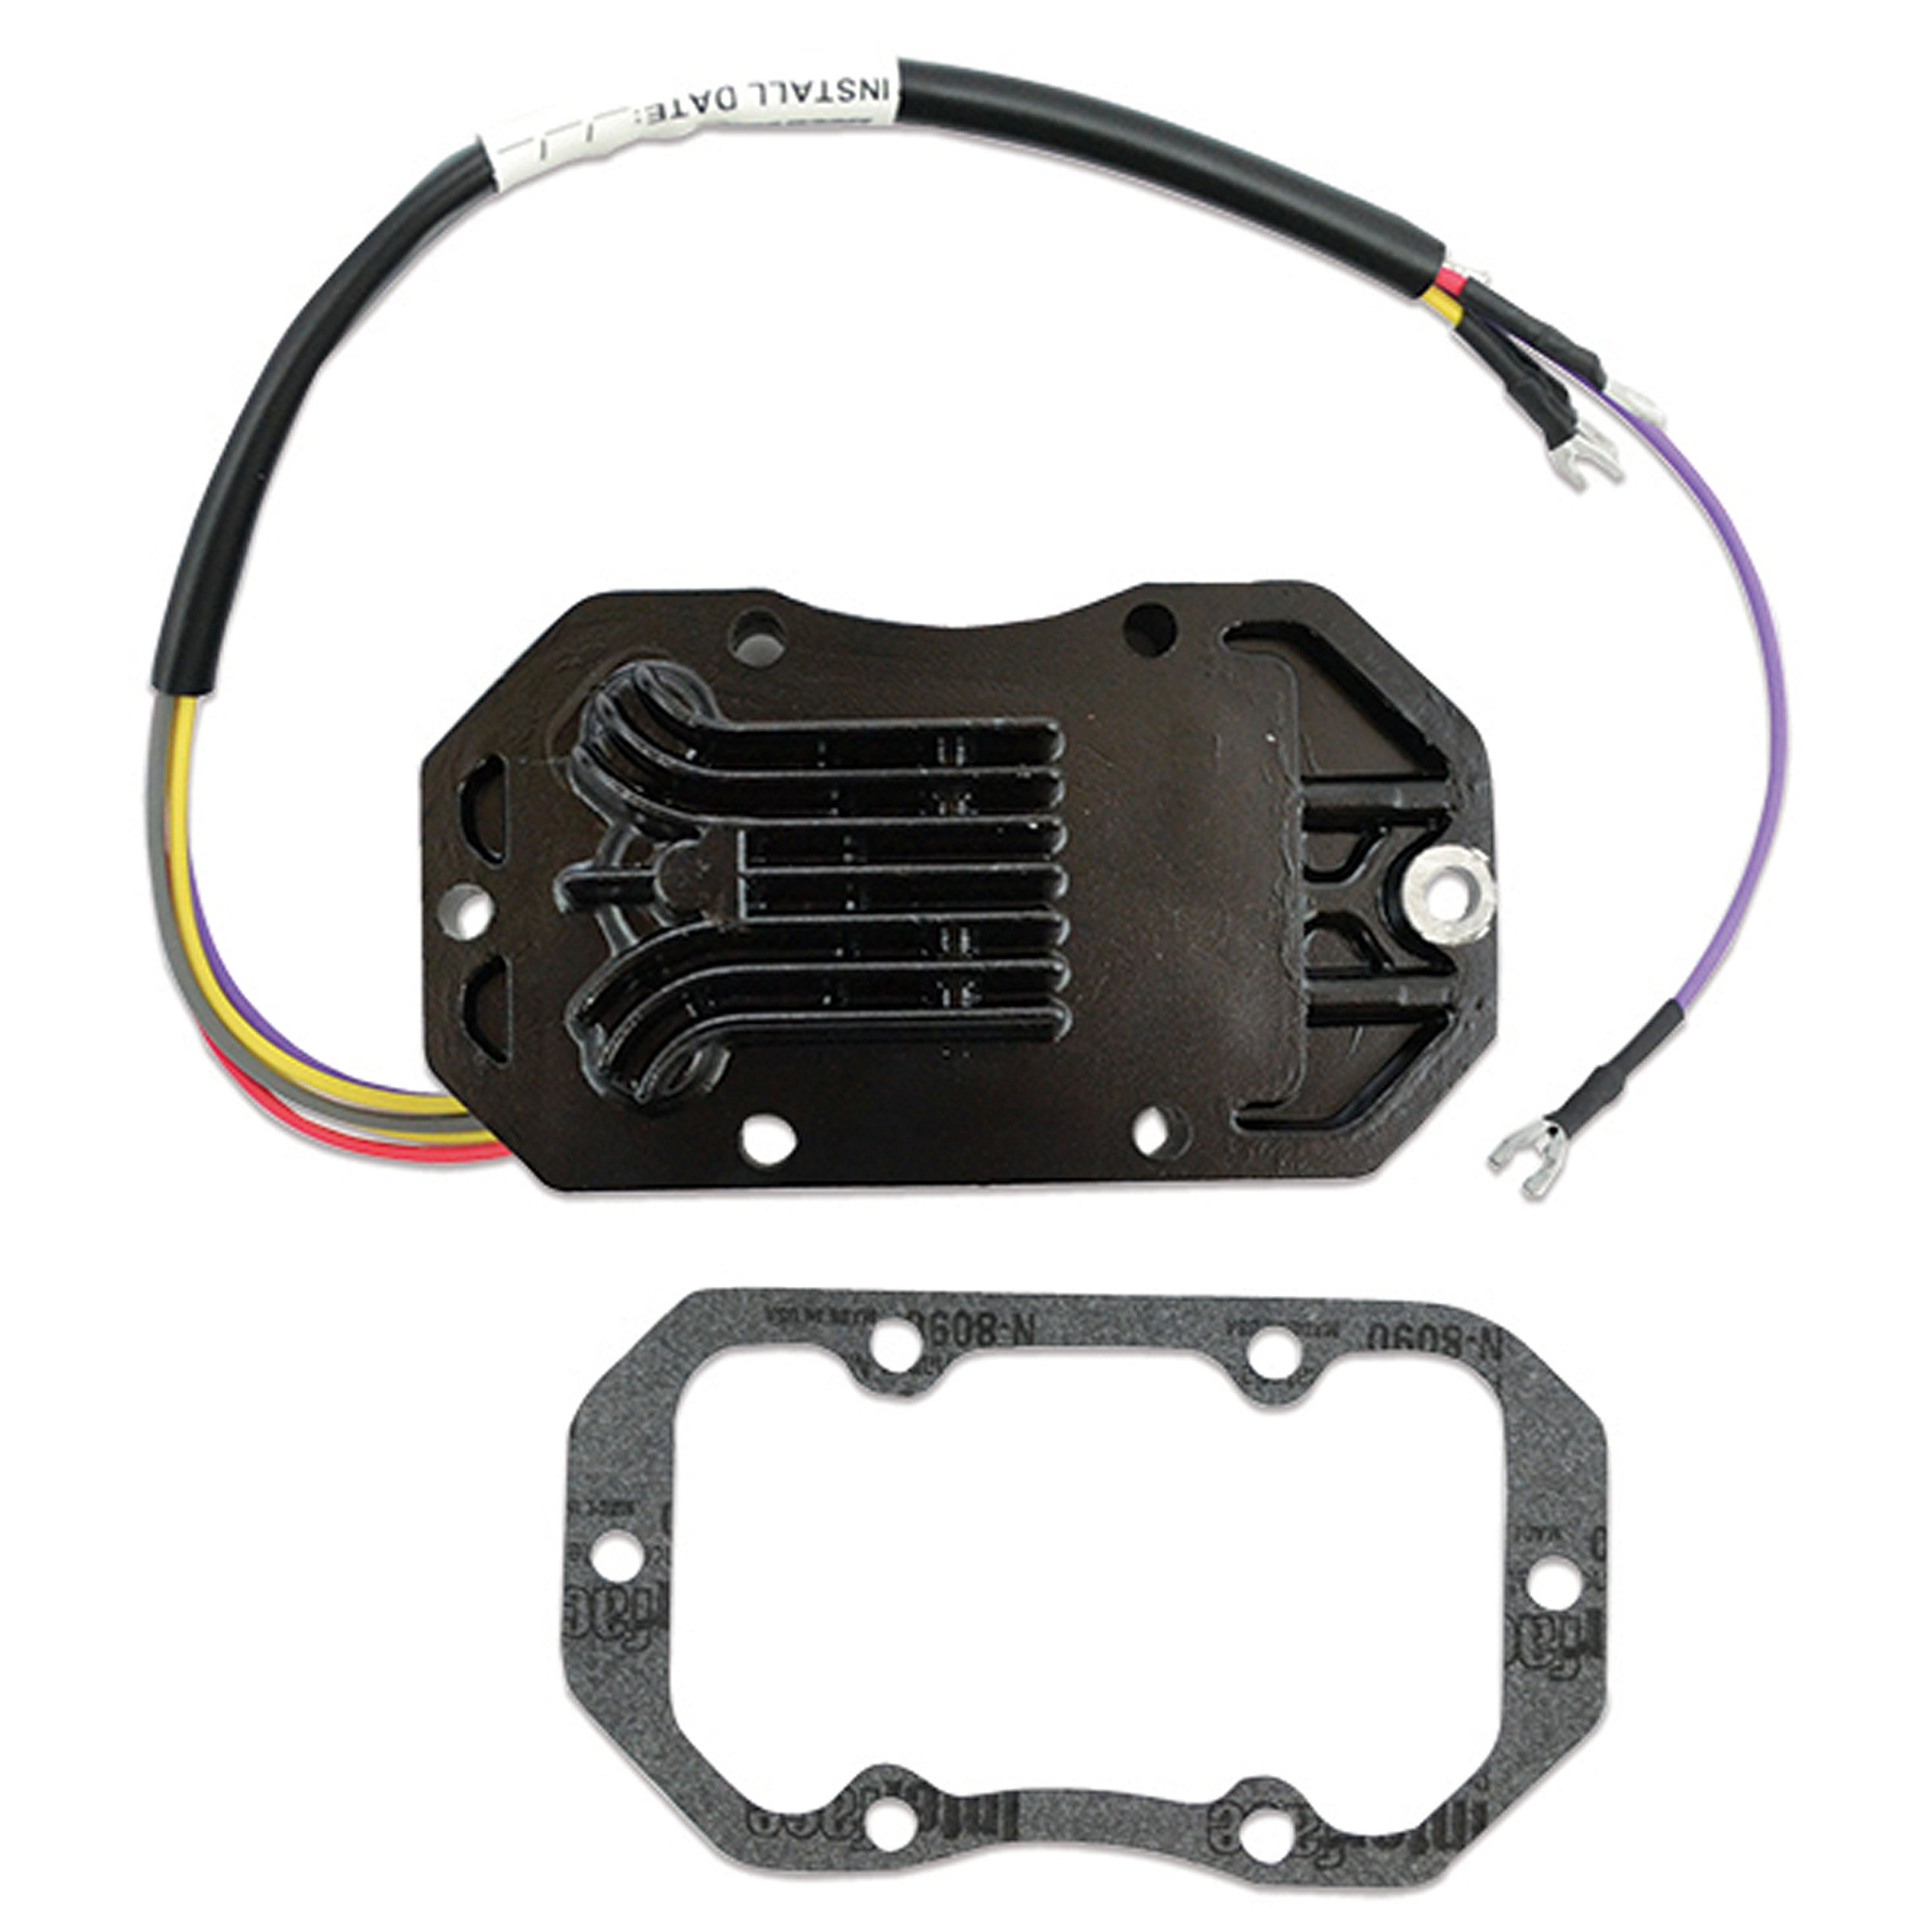 CDI Electronics 193-4204 Johnson/Evinrude Voltage Regulator-4/6 Cyl. 10 Amp (1984-1990) by CDI Electronics